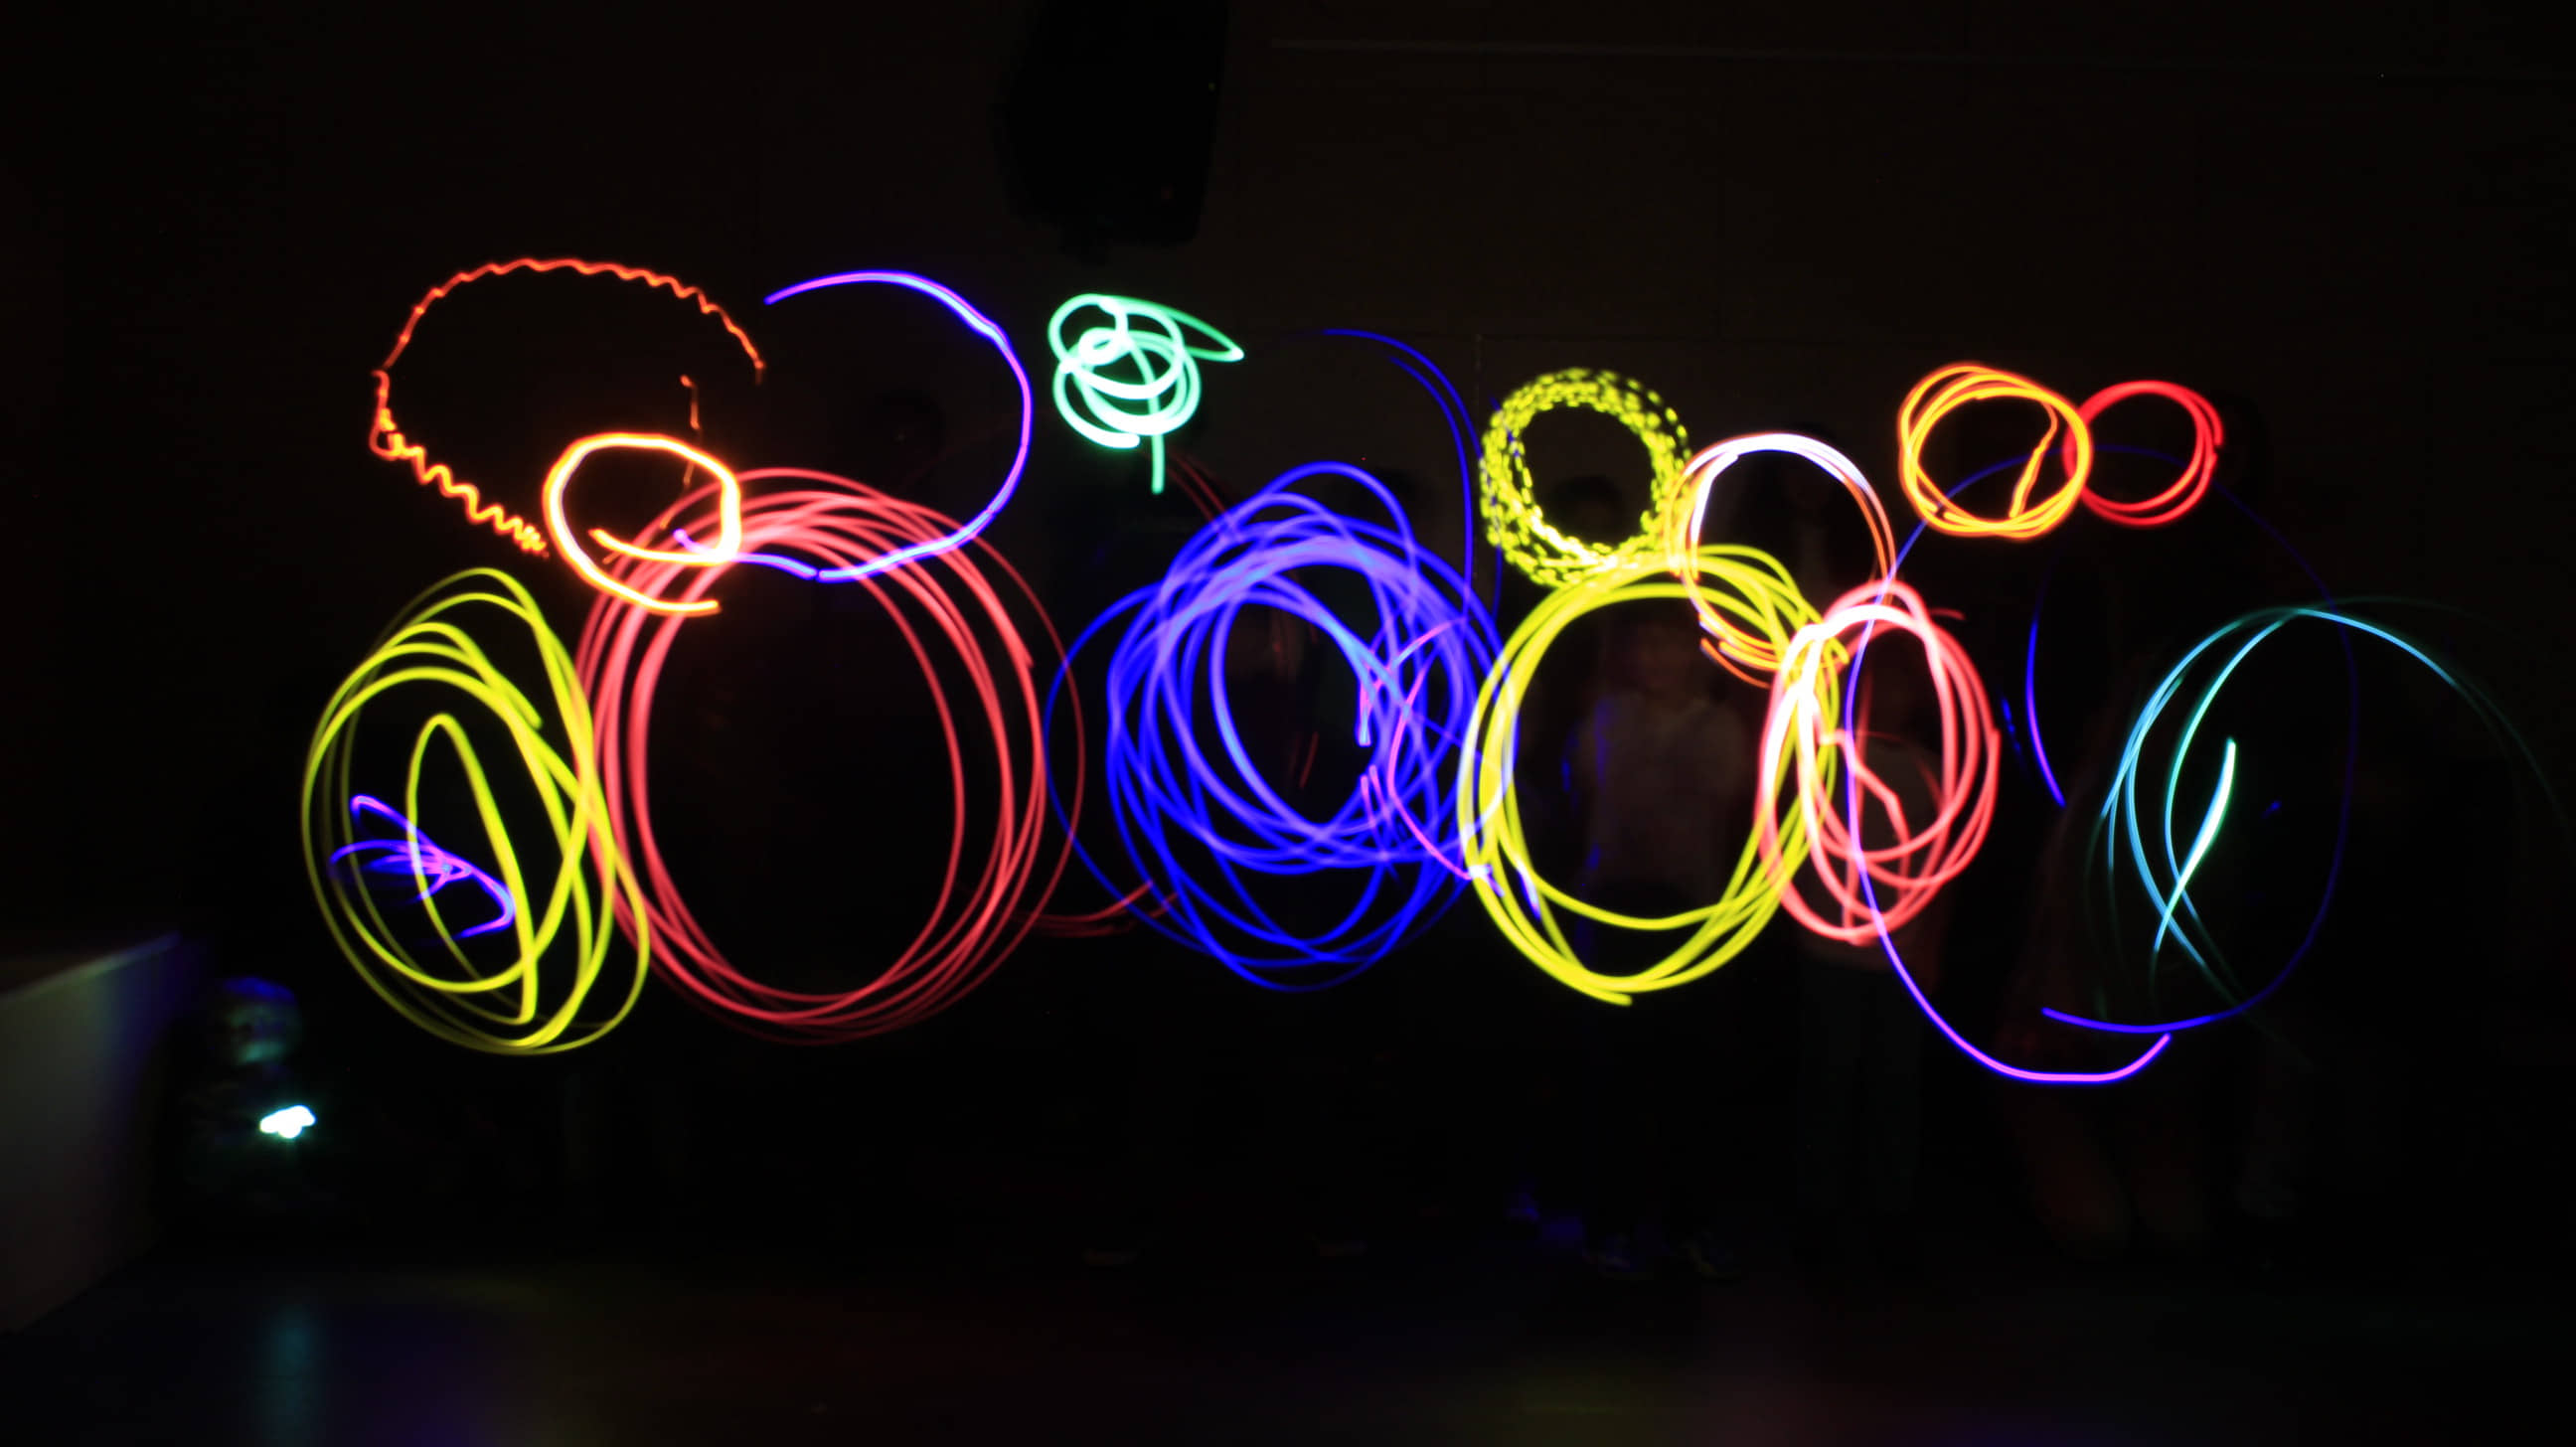 Sign up to the Pika Pika animation workshop and learn to paint with light